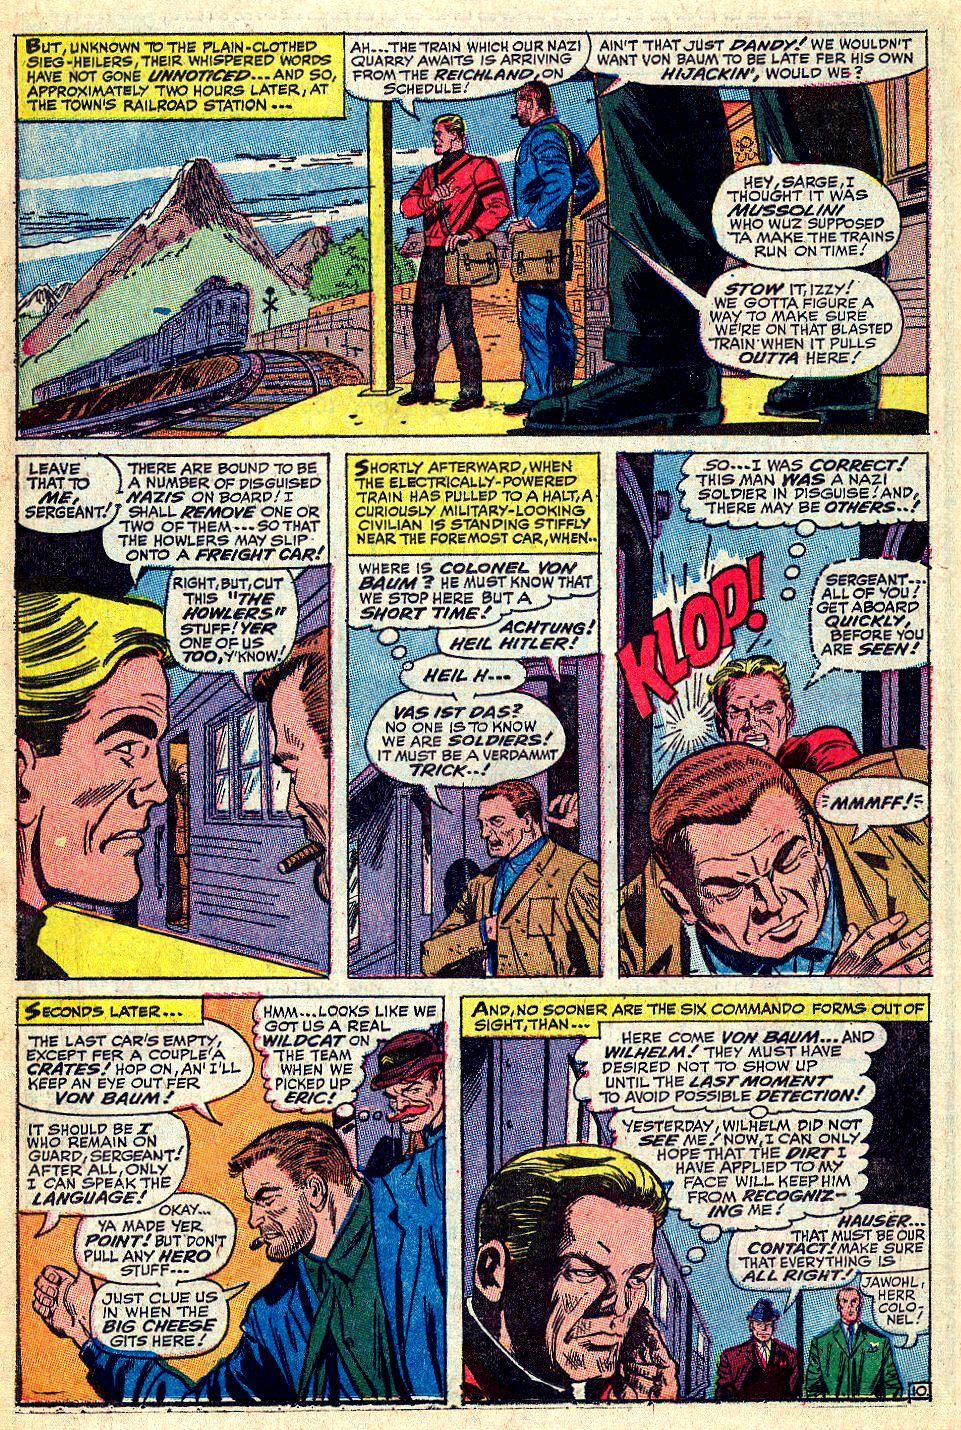 Read online Sgt. Fury comic -  Issue #36 - 14